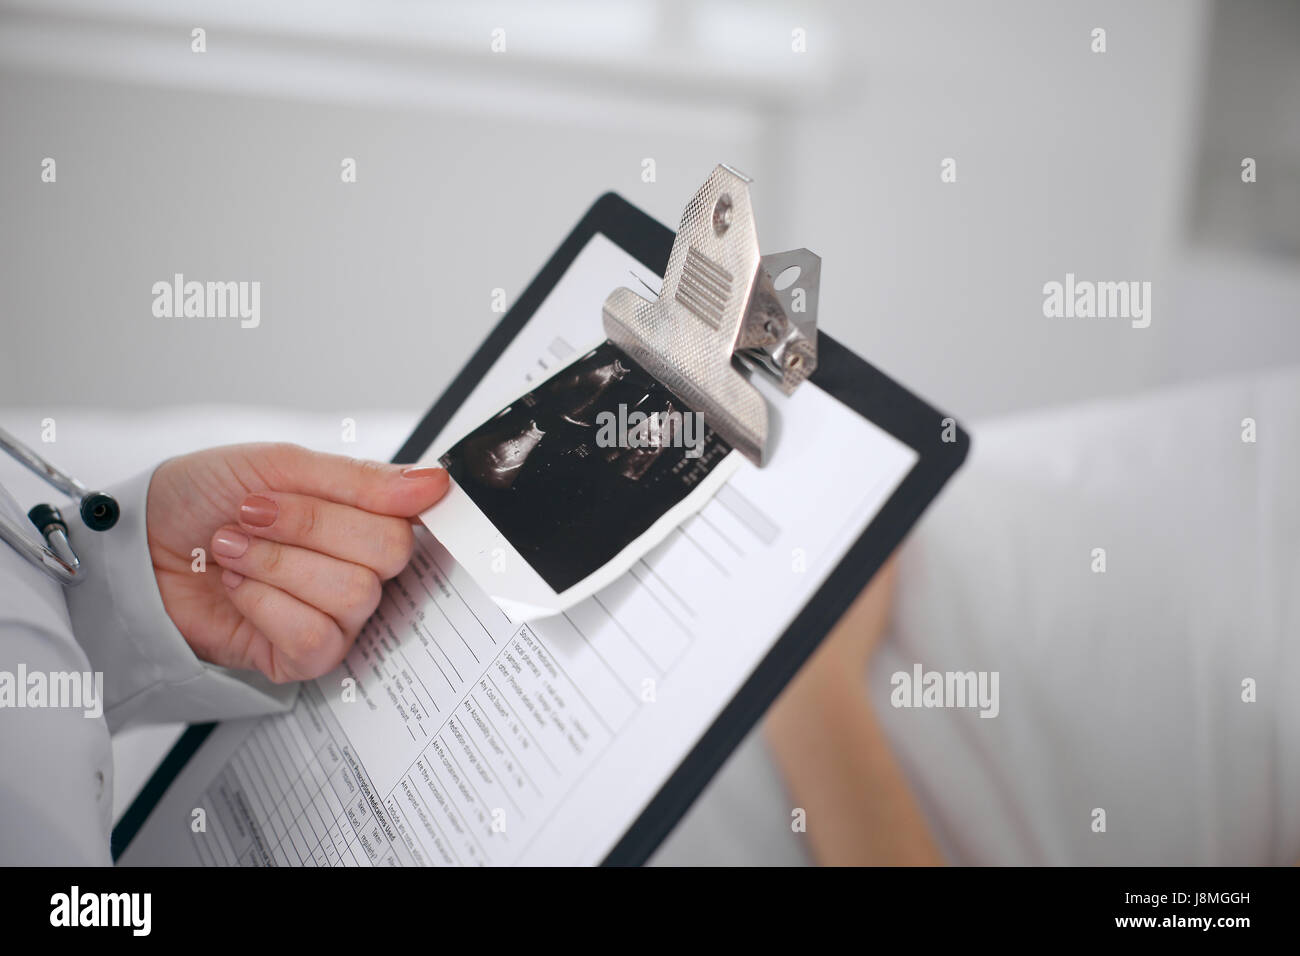 Close-up of a female doctor holding application form with ultrasonography while consulting patient - Stock Image